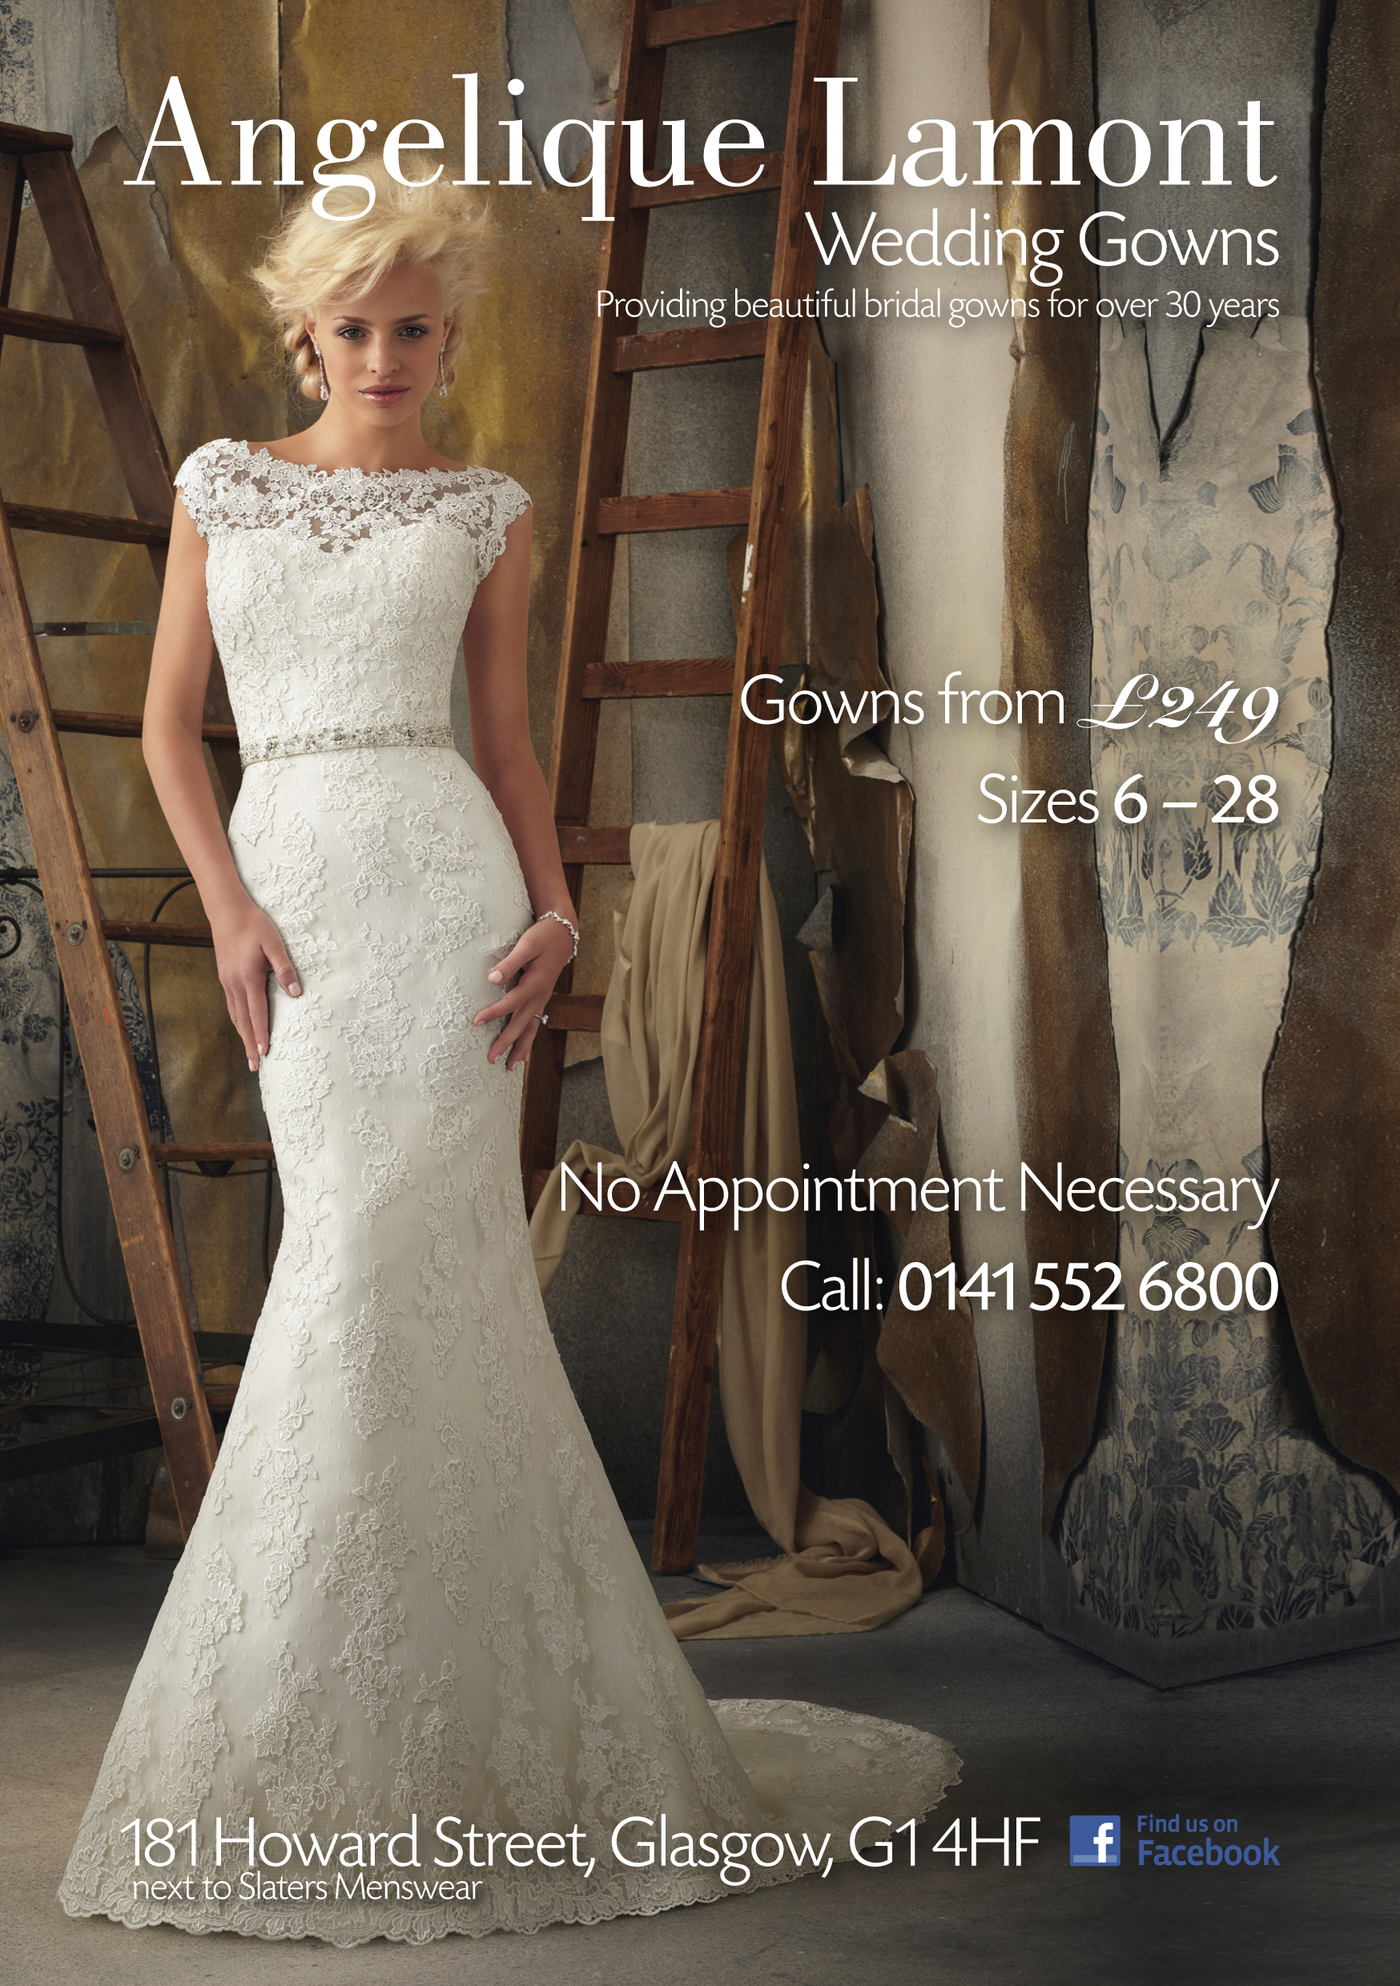 Angelique Lamont Wedding Gowns by Craig Carrigan at Coroflot.com